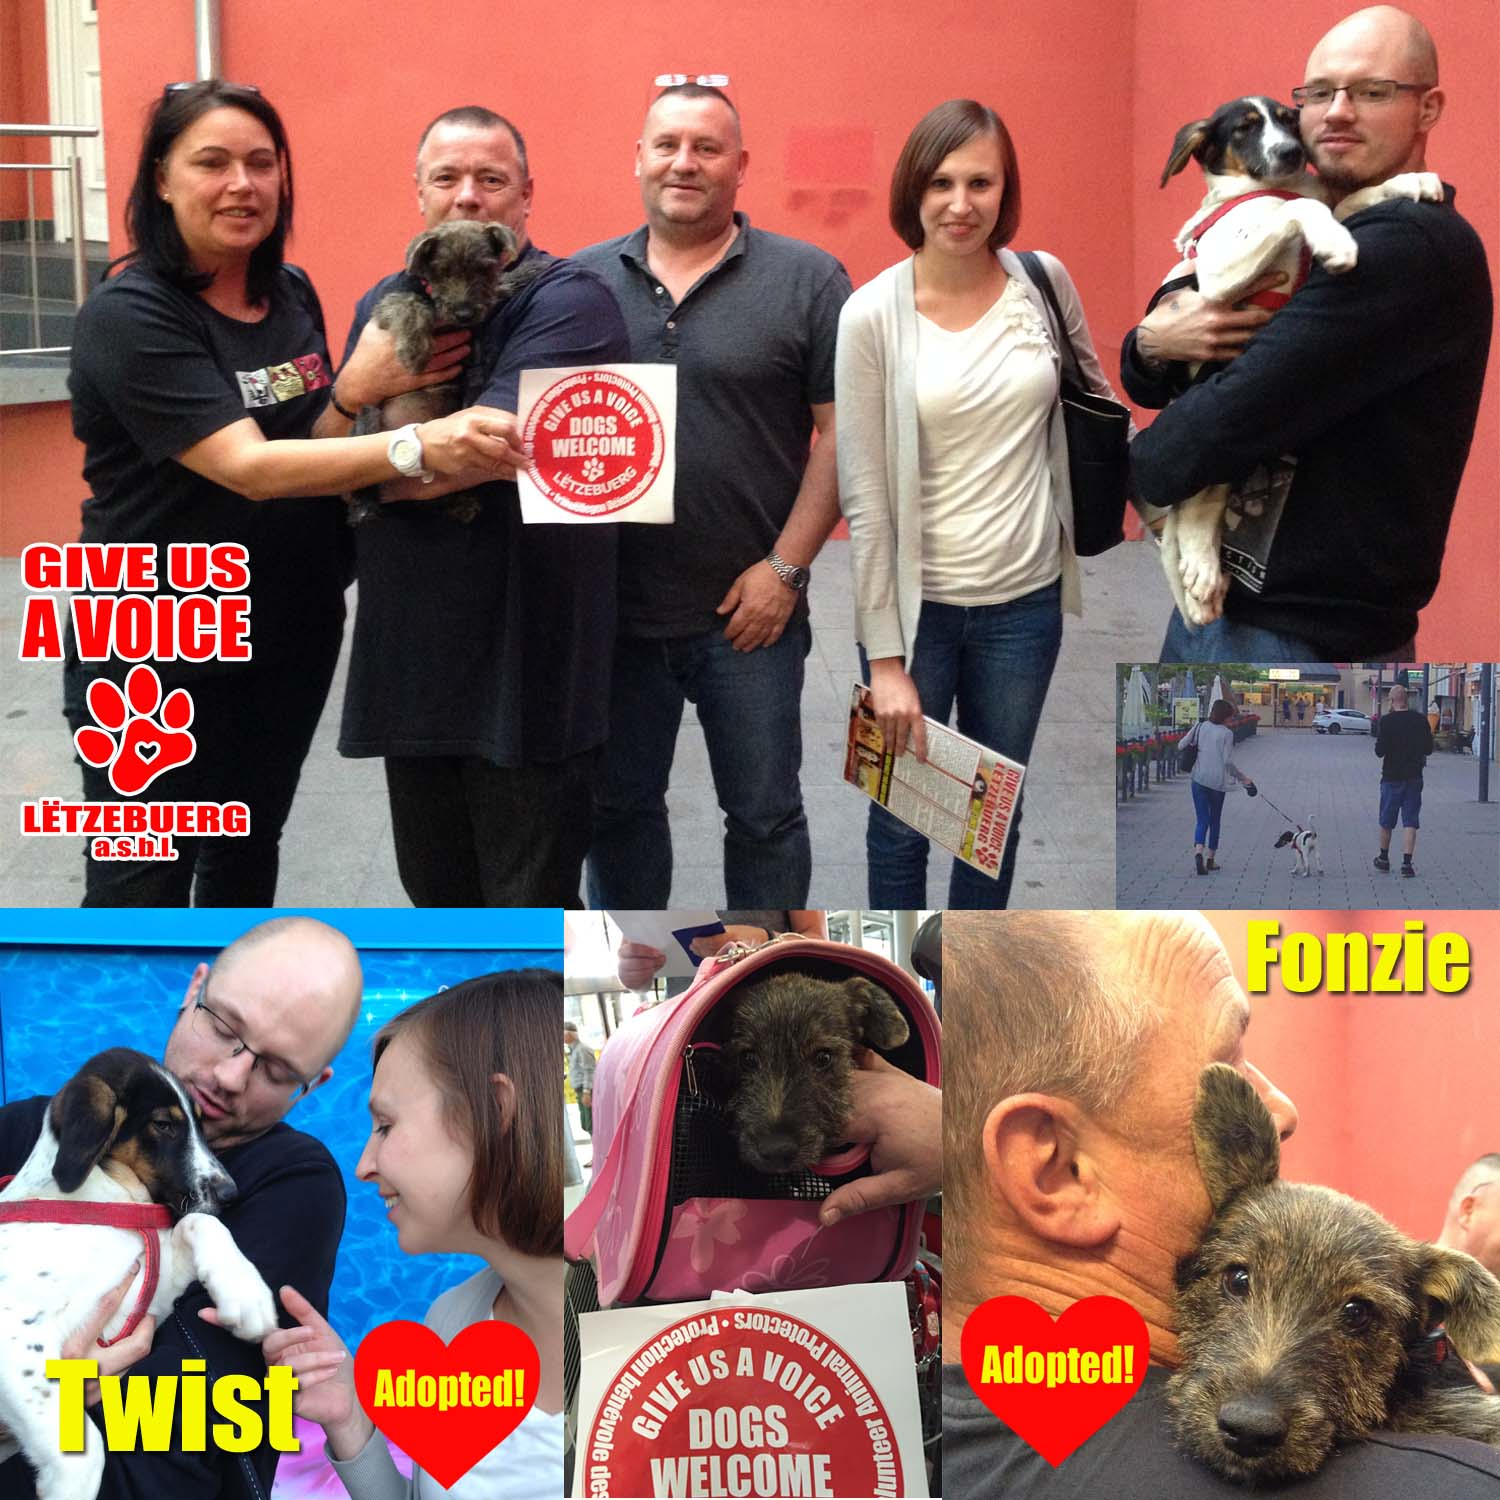 Fonsi and Twist Adopted! copy